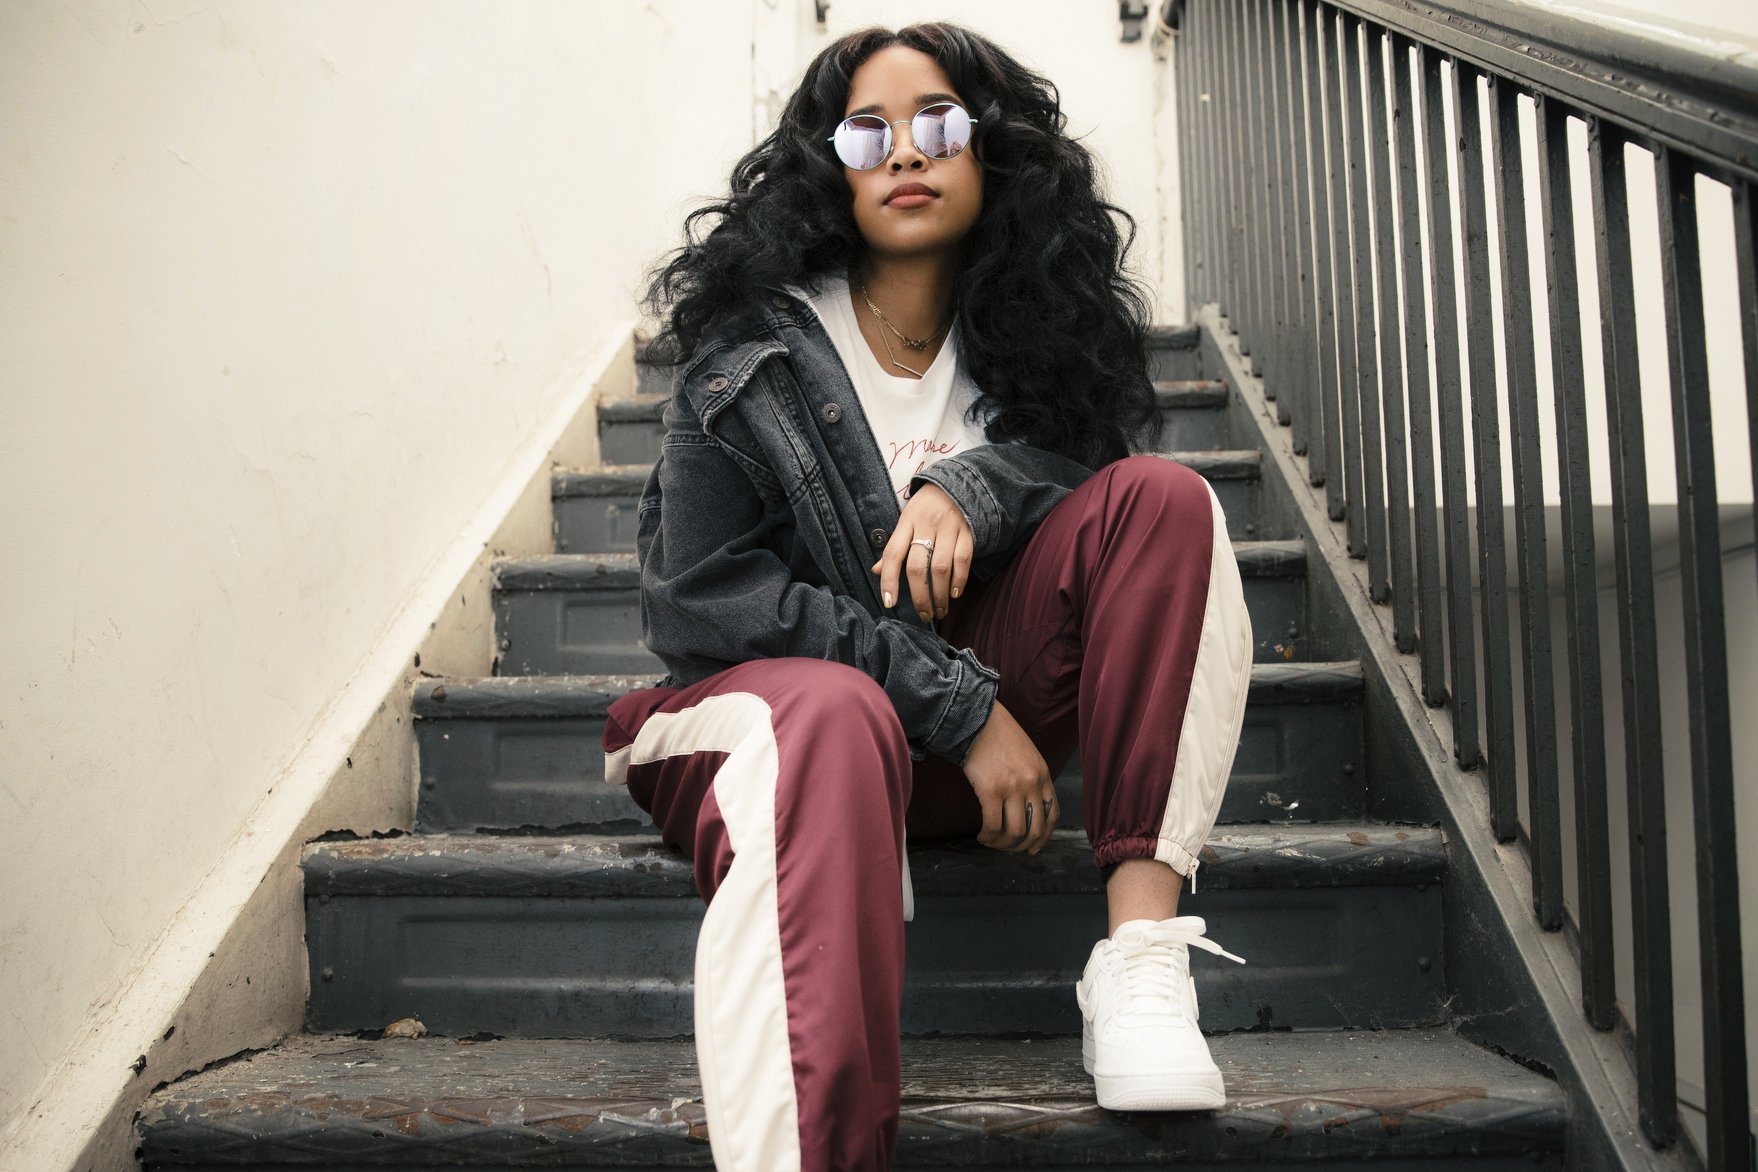 In this Aug. 13, 2018 photo, R&B singer Gabi Wilson, better known as H.E.R., poses for a portrait in New York. She is Apple Music???s latest ???Up Next??? artist and ranks sixth among R&B artists on the streaming platform. (Photo by Victoria Will/ Invision/AP)